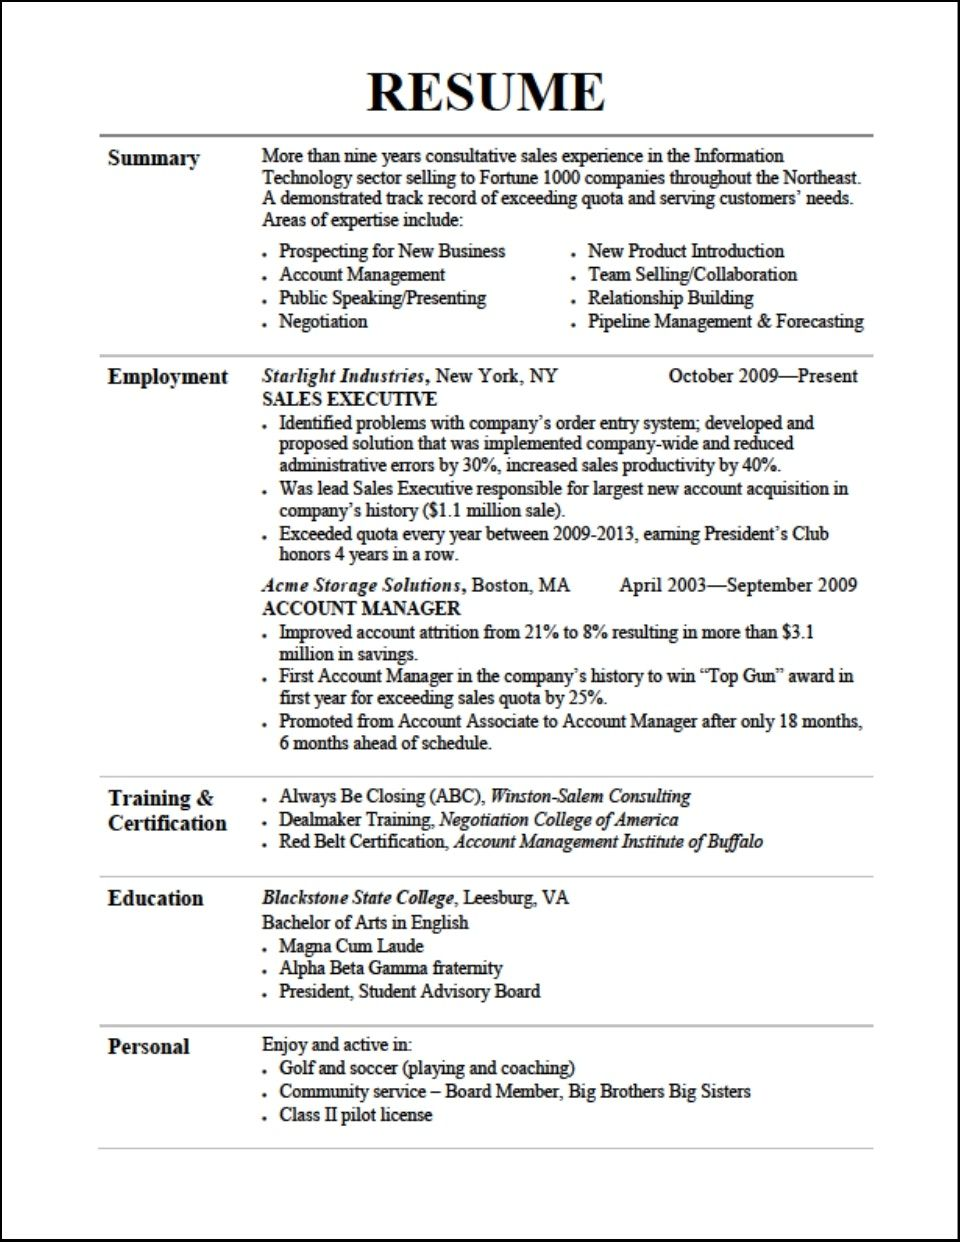 A Resume Title Examples In 2020 Job Resume Examples Good Resume